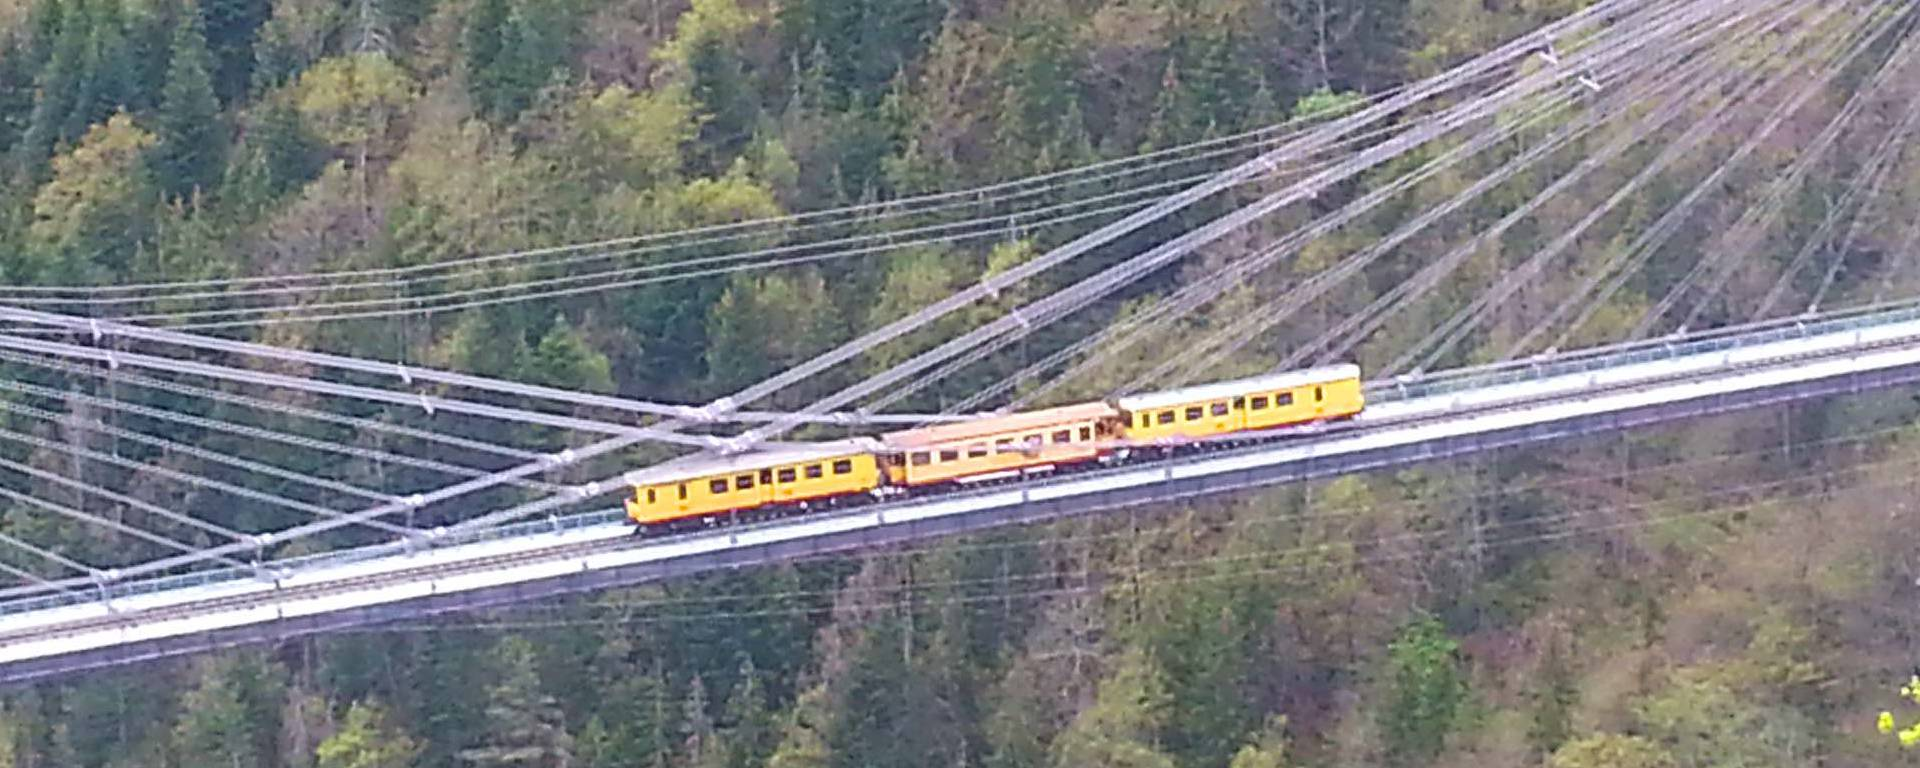 Le train Jaune sur le pont Gisclard